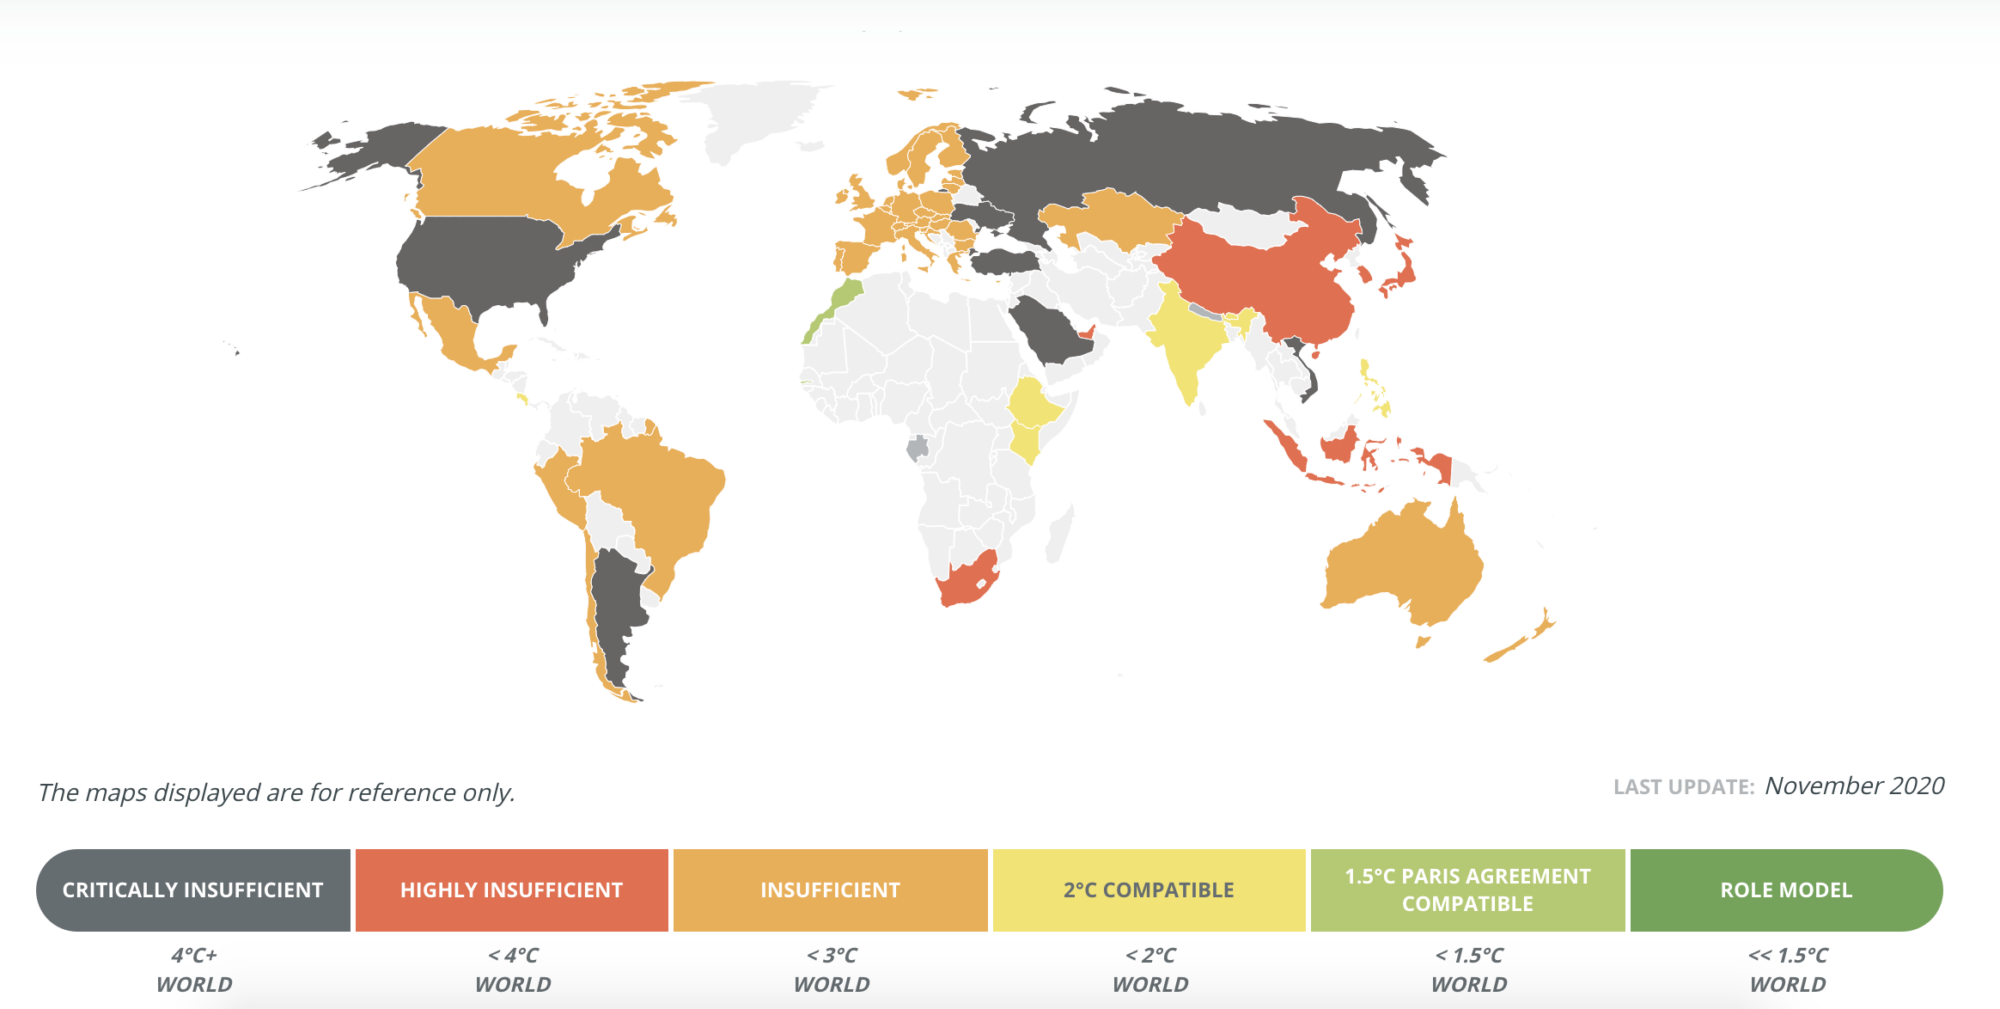 A world map, with countries colour-coded based on the strength of their Paris Climate Agreement pledges. Most are rated insufficient or critically insufficient.